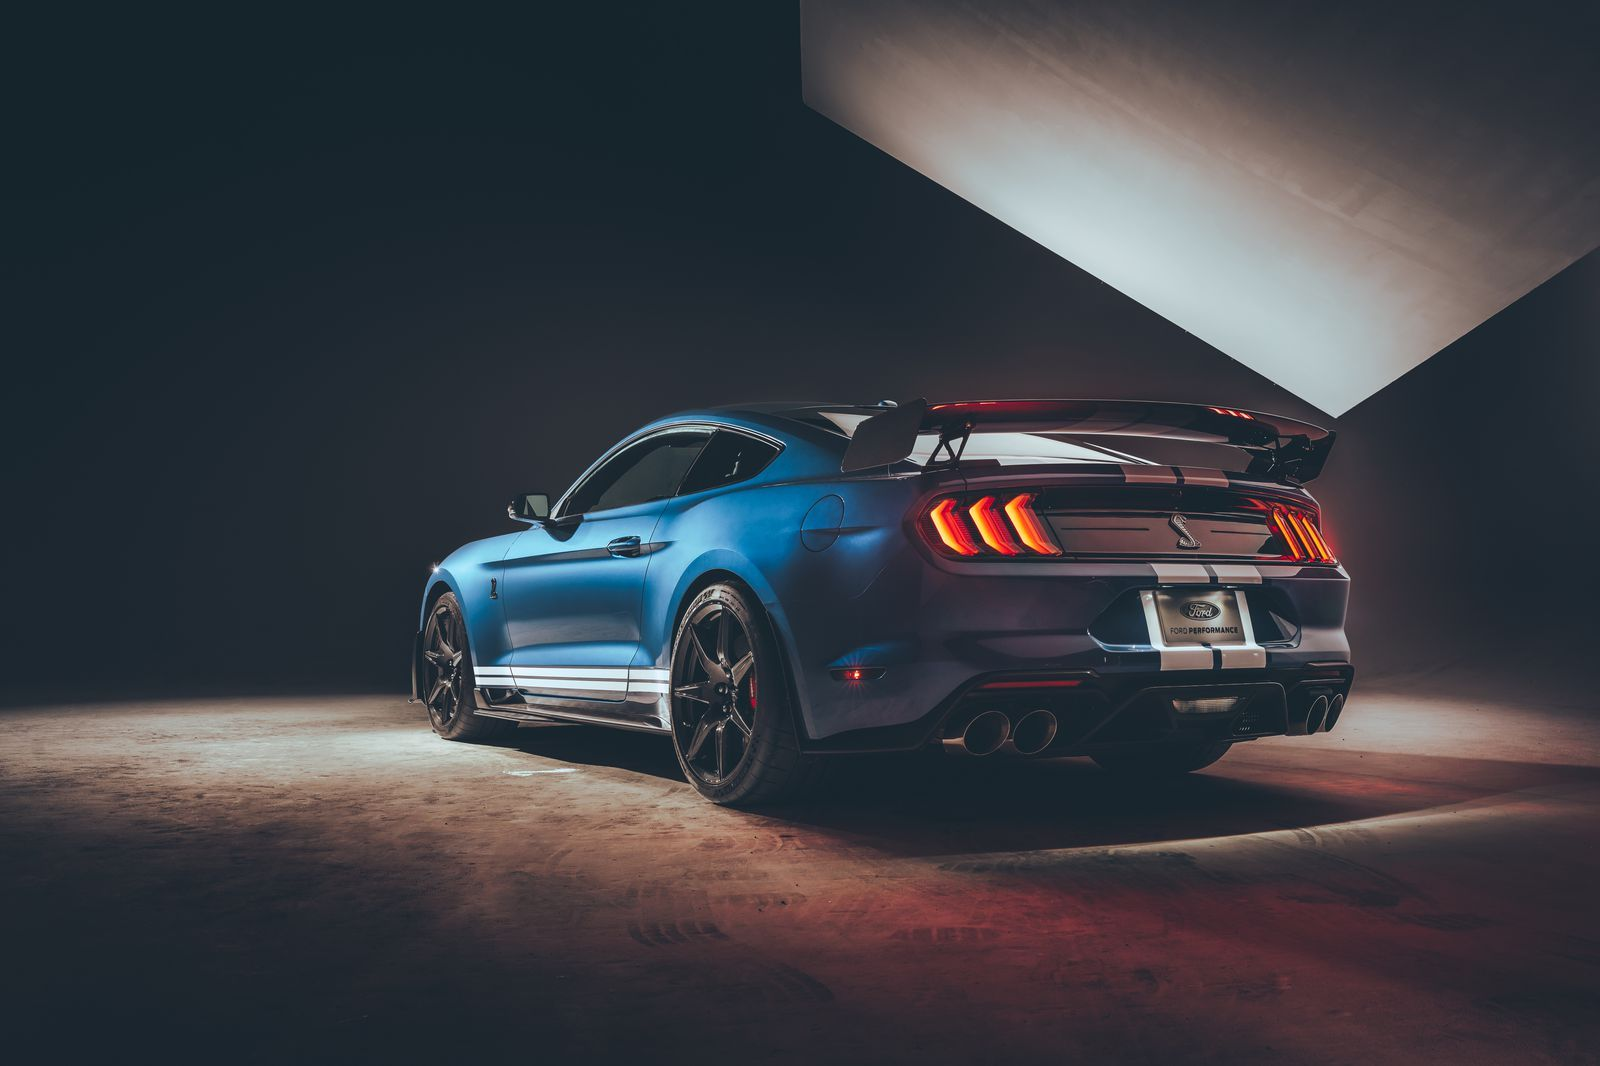 2020 mustang shelby gt500 is the most powerful ford ever built rh pinterest com